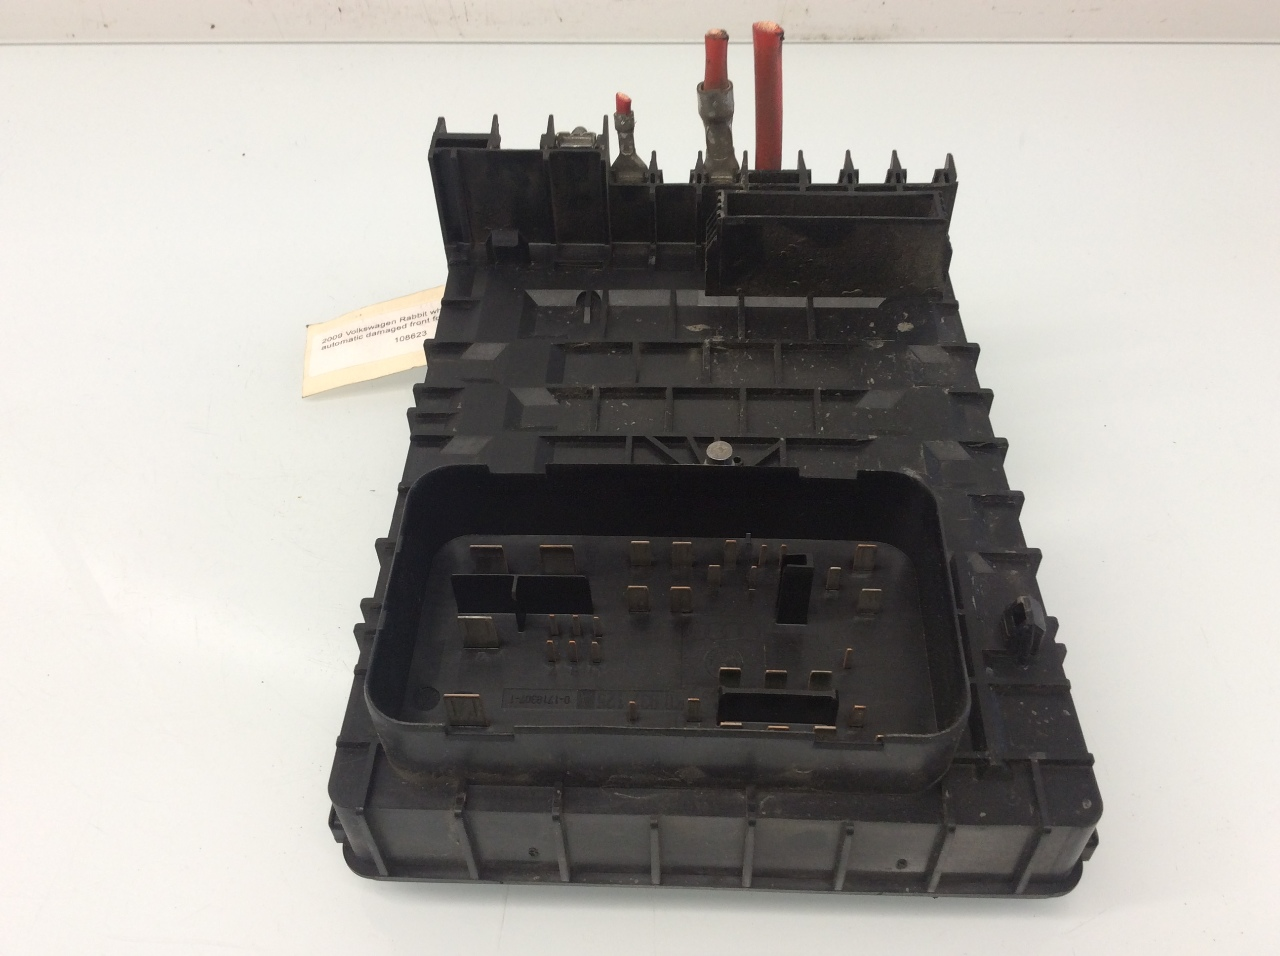 Vw Fuse Box Engine Conpartment Volkswagen Rabbit Compartment Panel Diagram 2006 2007 2008 2009